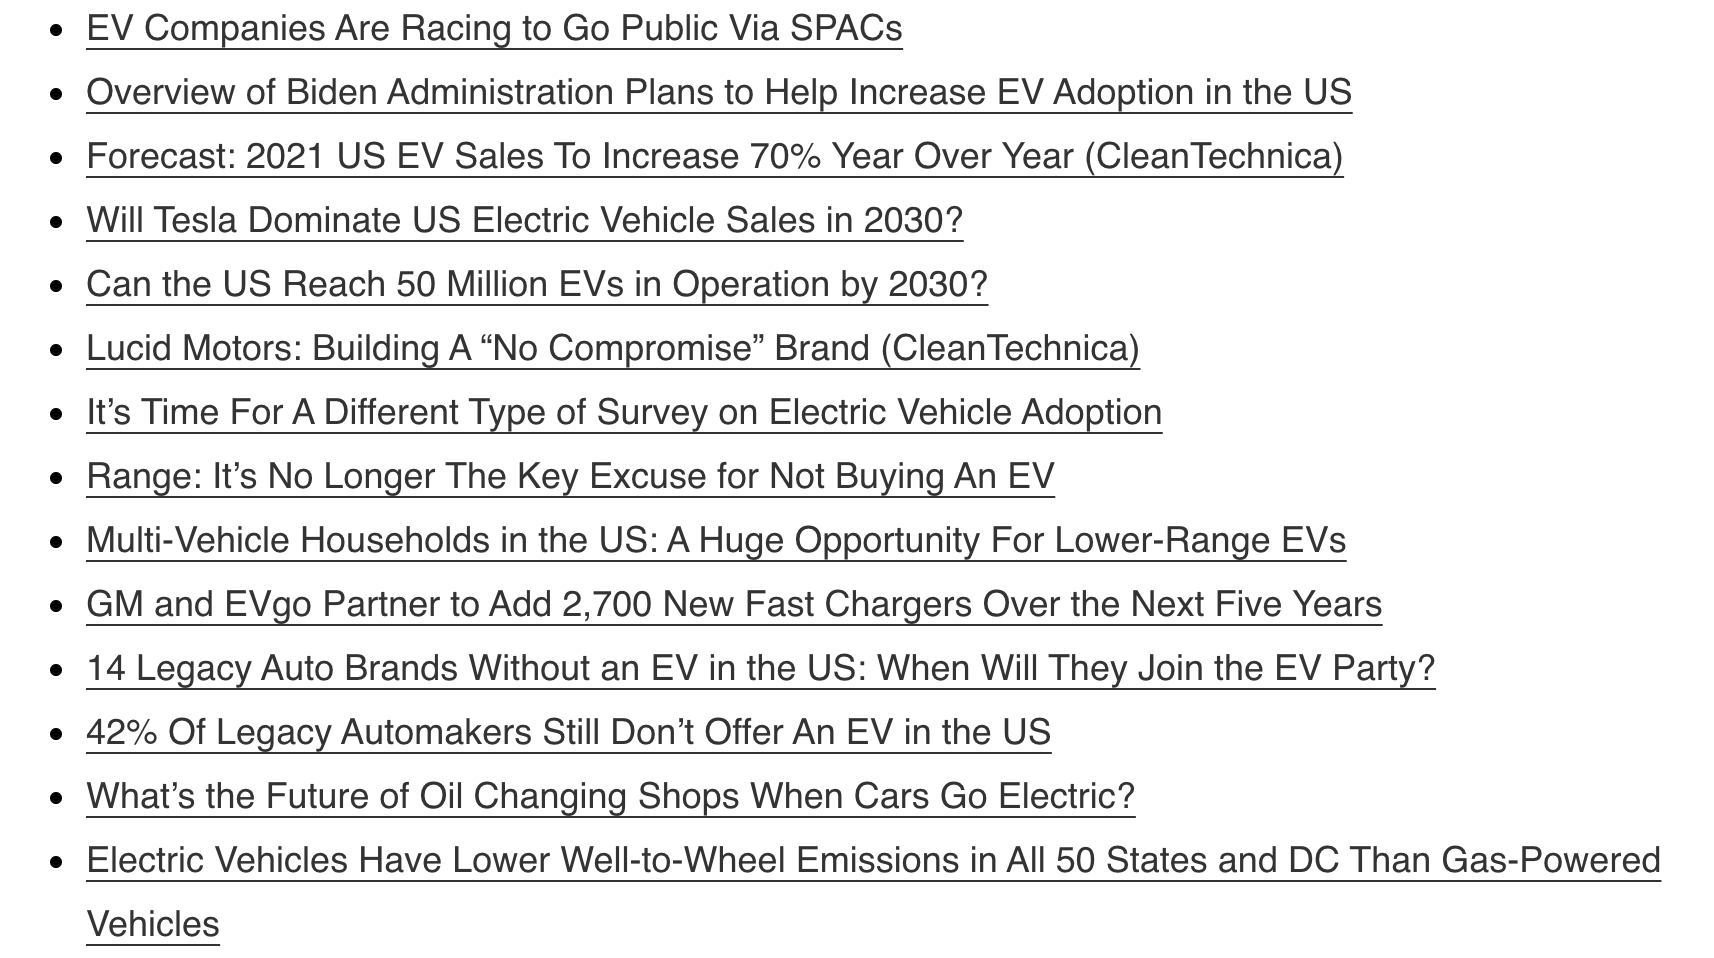 My Most Viewed and Favorite Articles From 2020